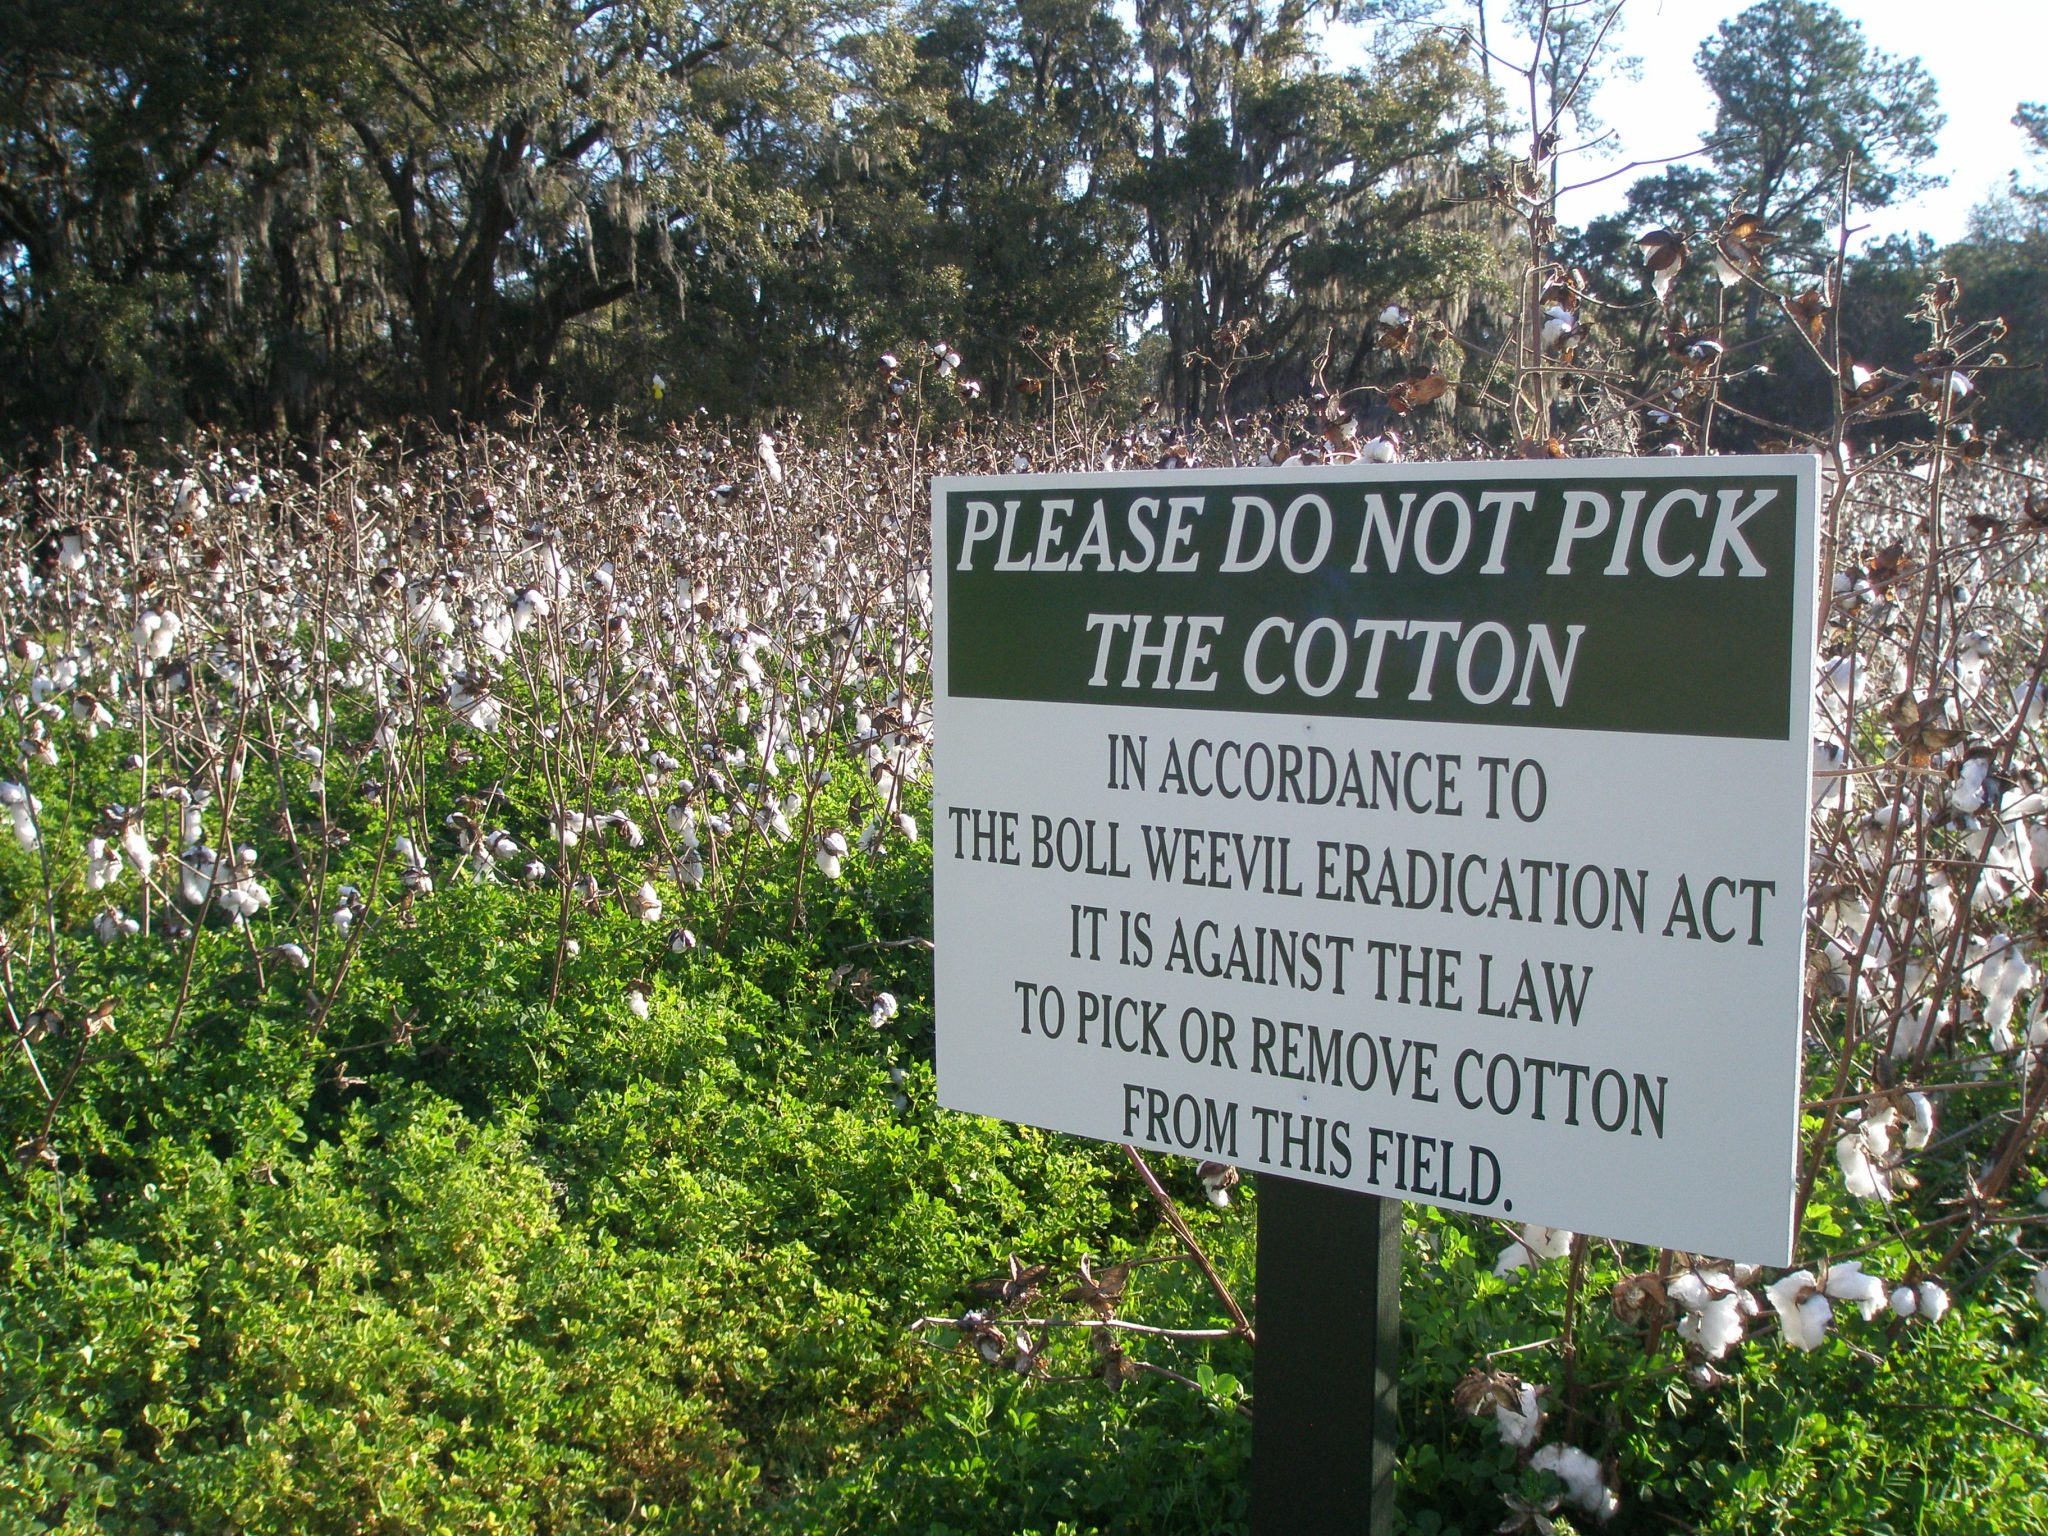 My first encounter with a Real-Life Cotton Field